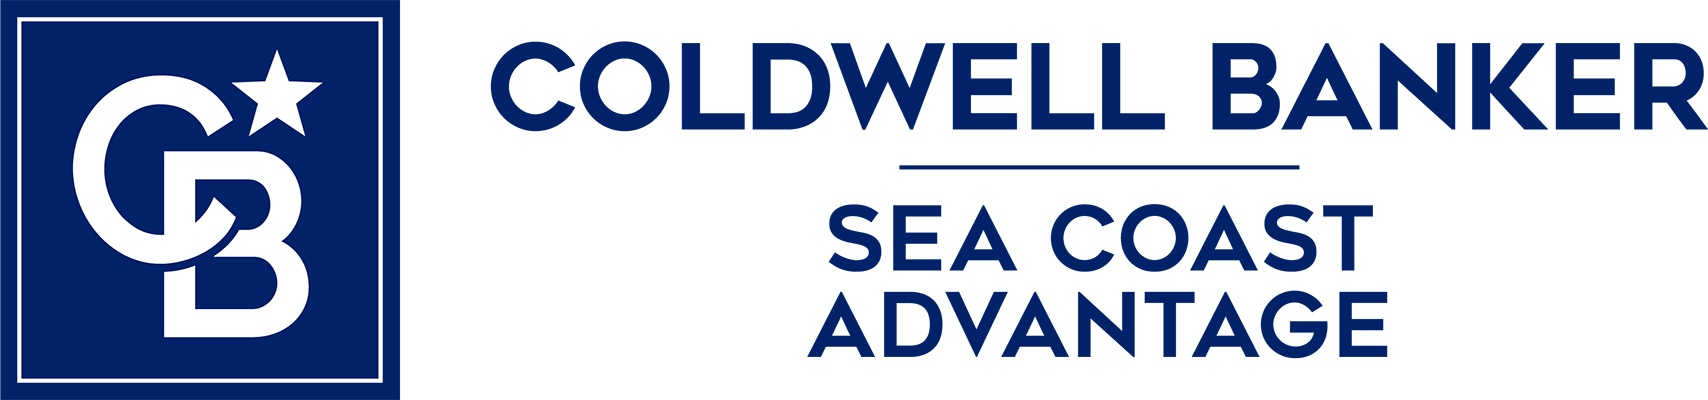 Thompson Lasley Group - Coldwell Banker Sea Coast Advantage